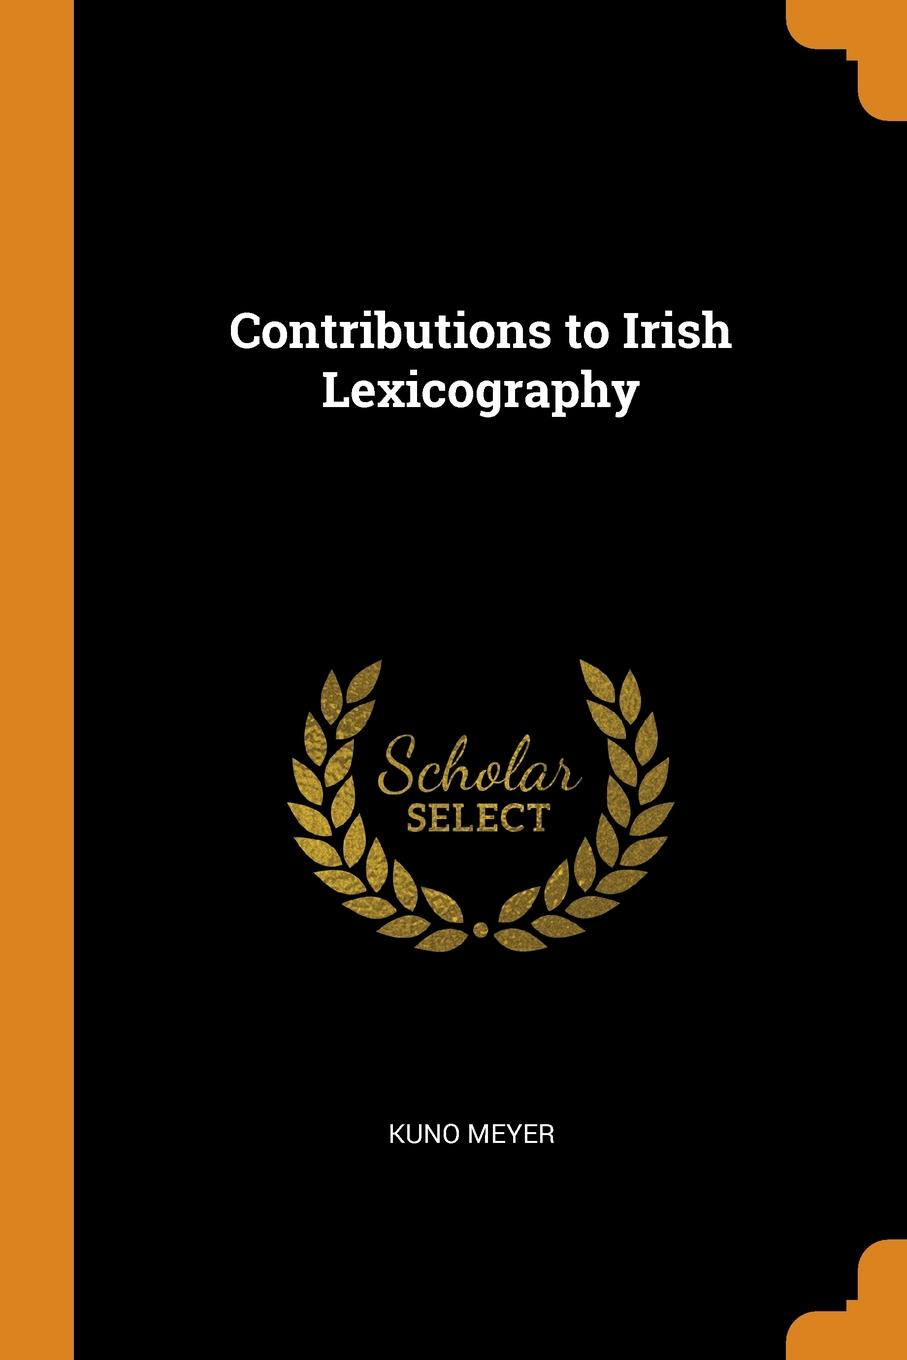 Kuno Meyer Contributions to Irish Lexicography kuno meyer cain adamnain an old irish treatise on the law of adamnan